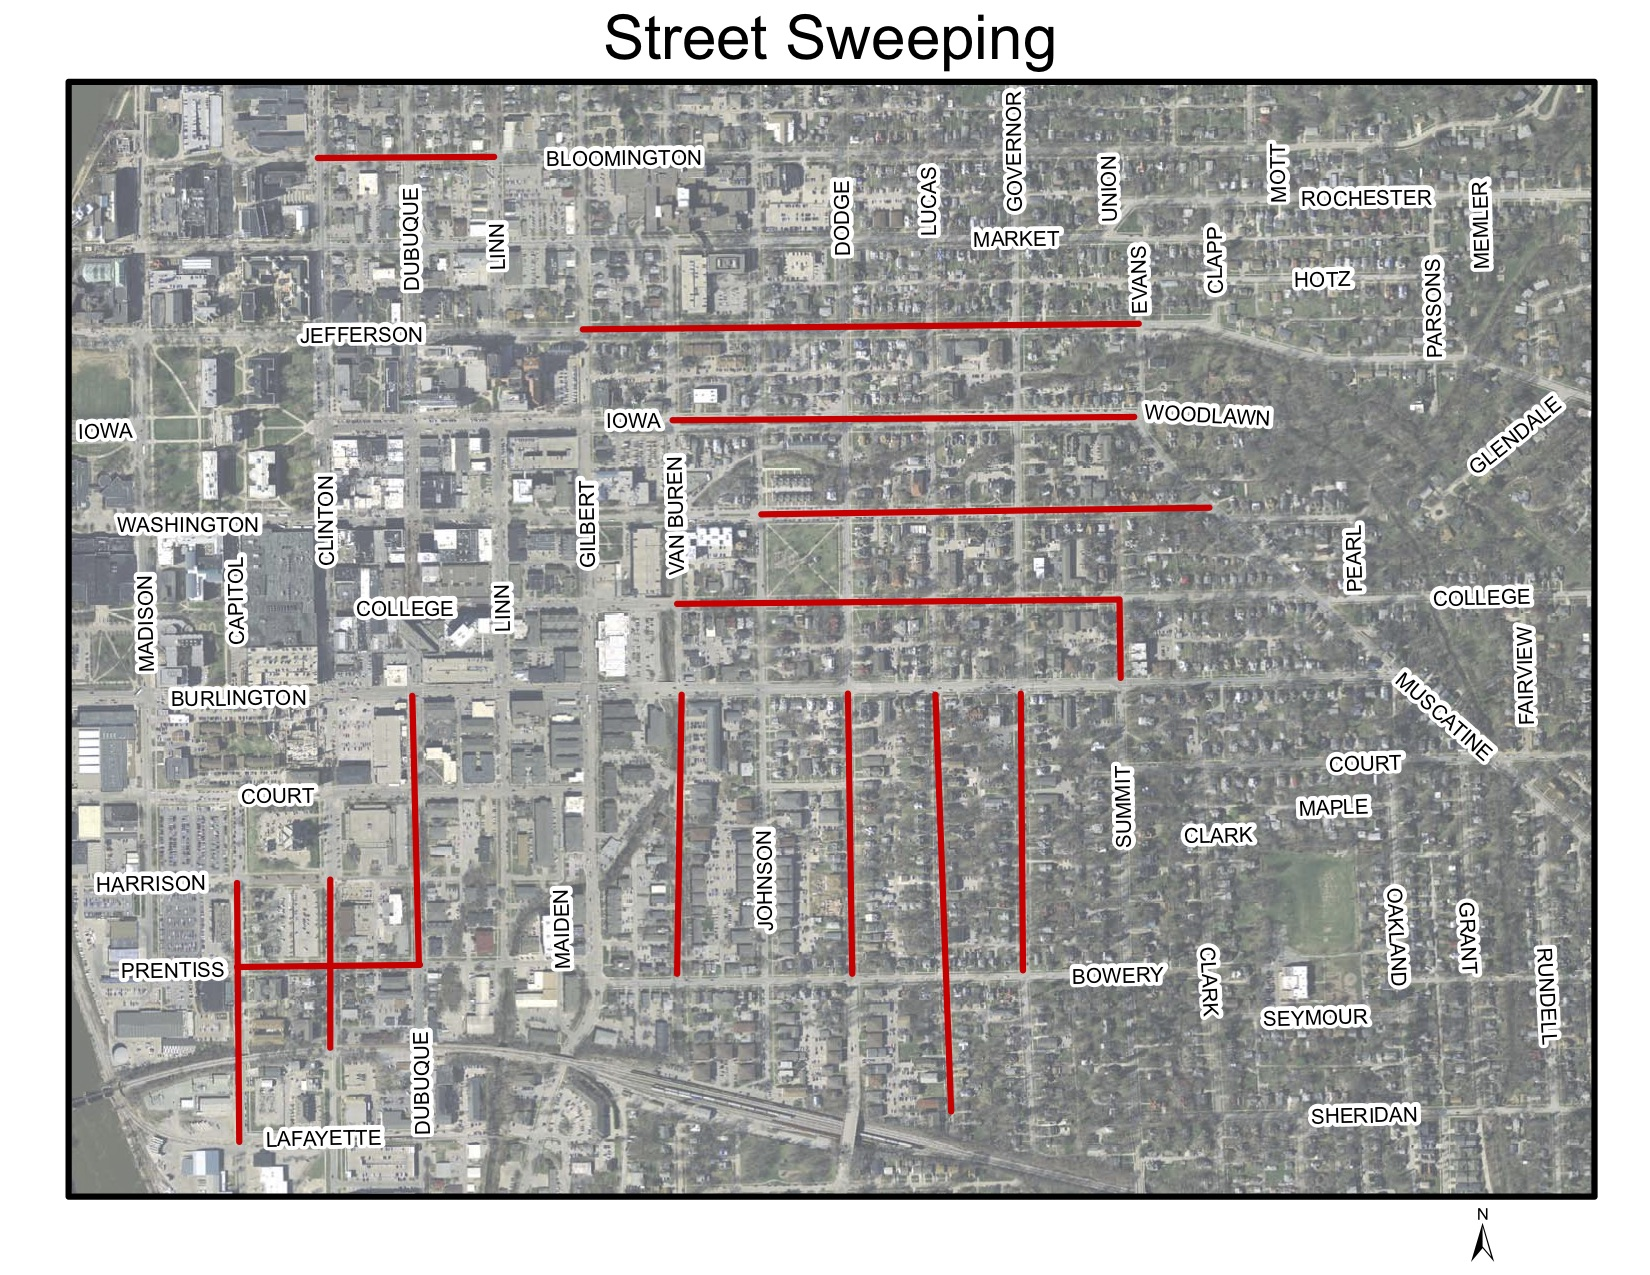 A map of street sweeping in Iowa City.